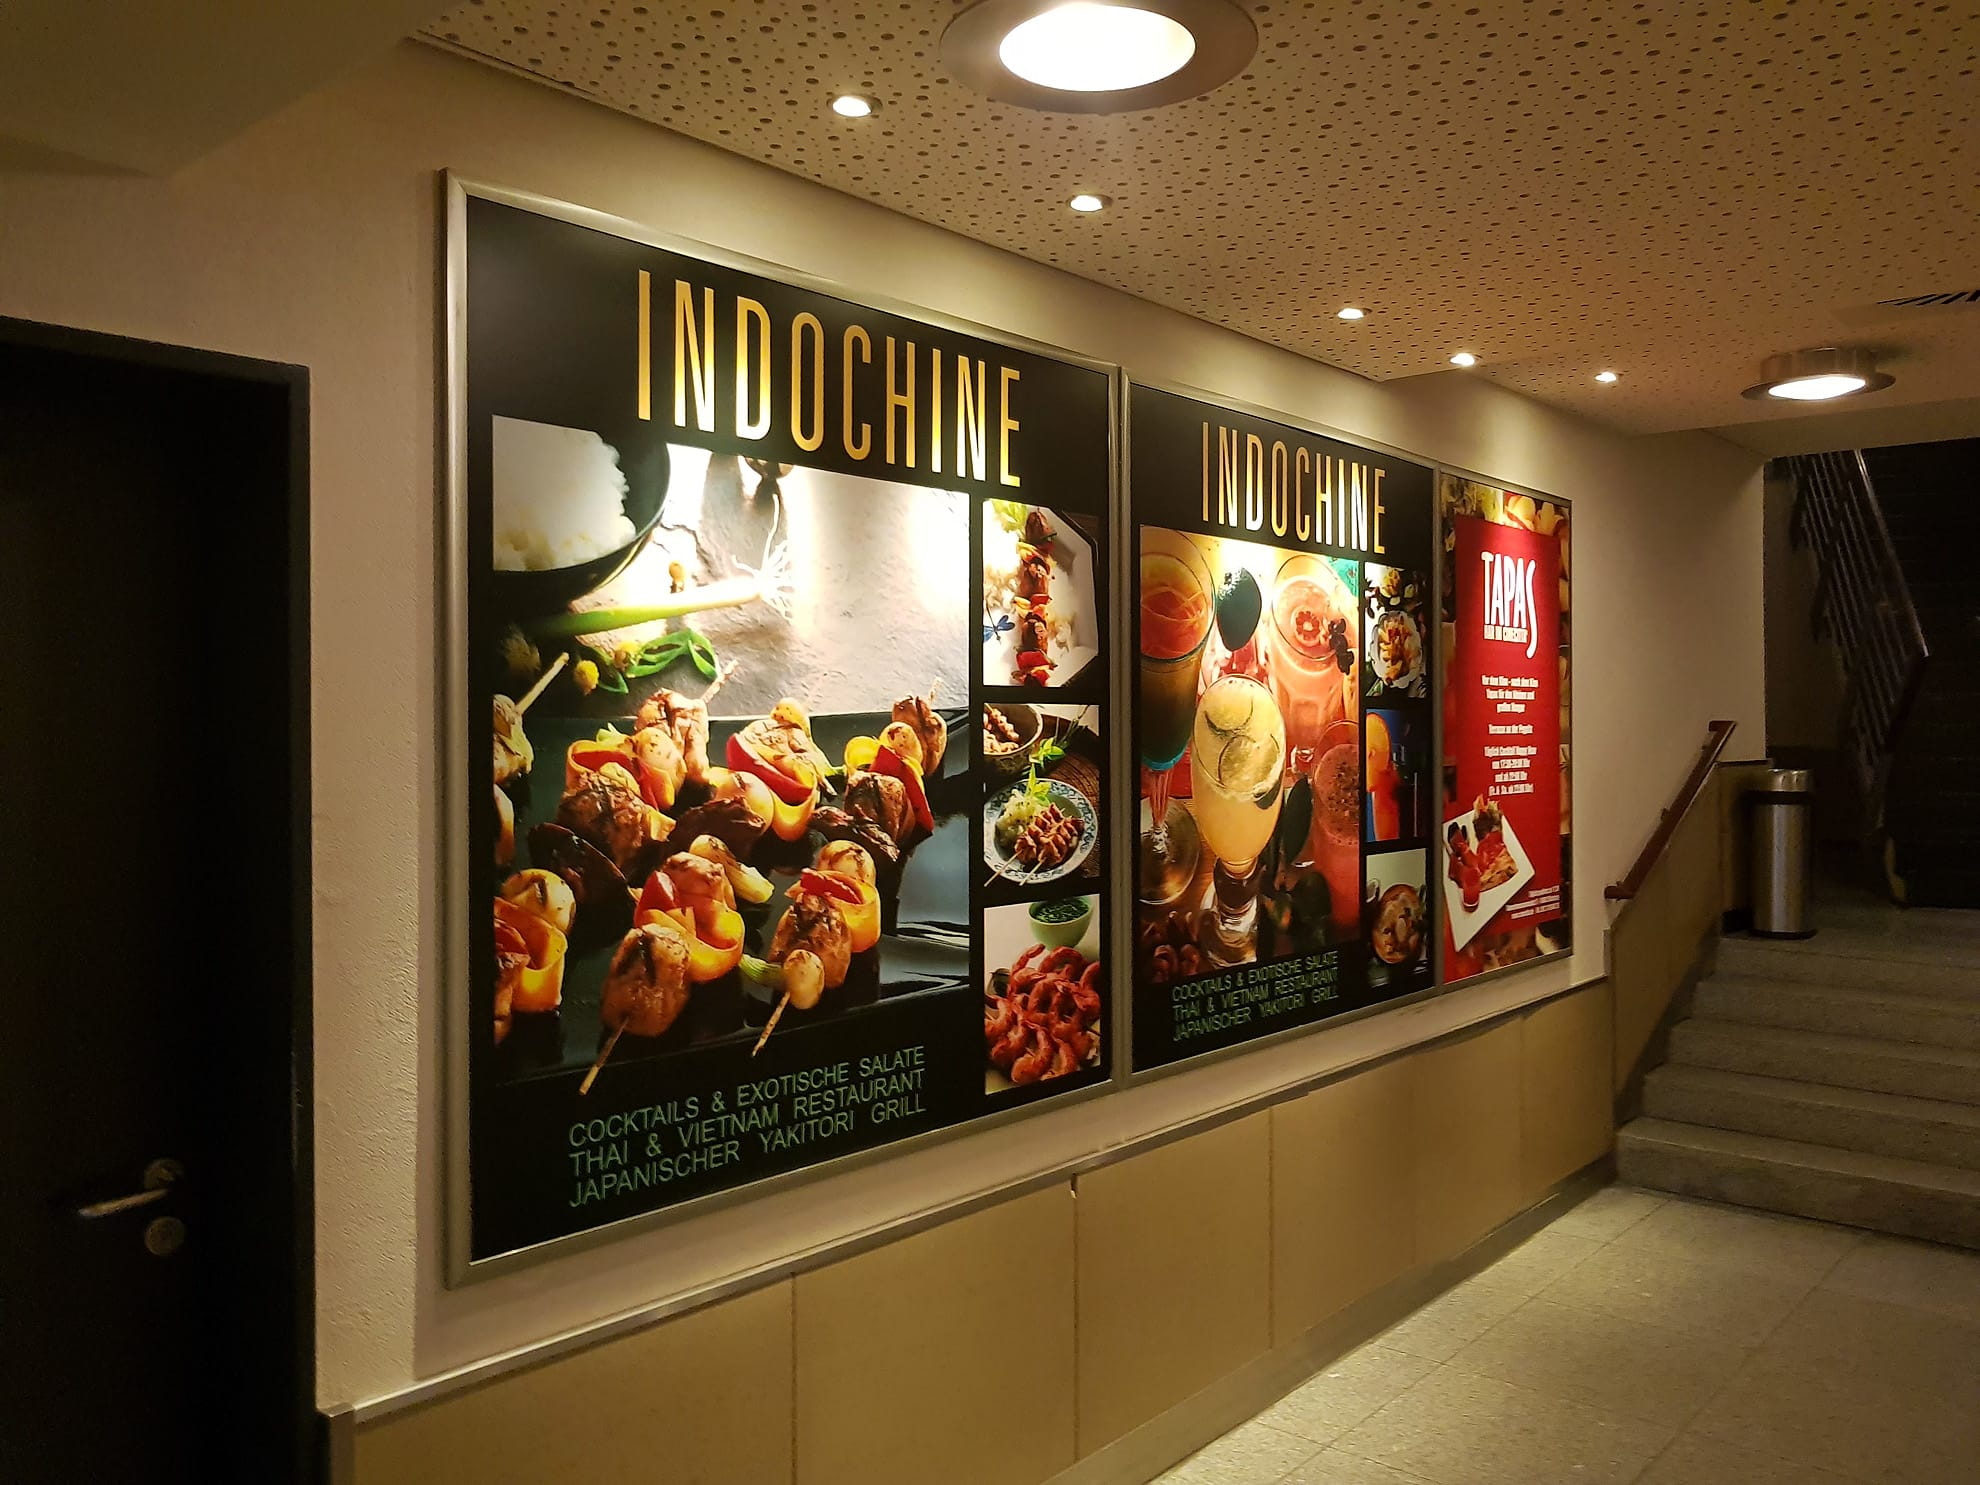 Indochine Sign at the Cinecittà in Nuremberg, Germany